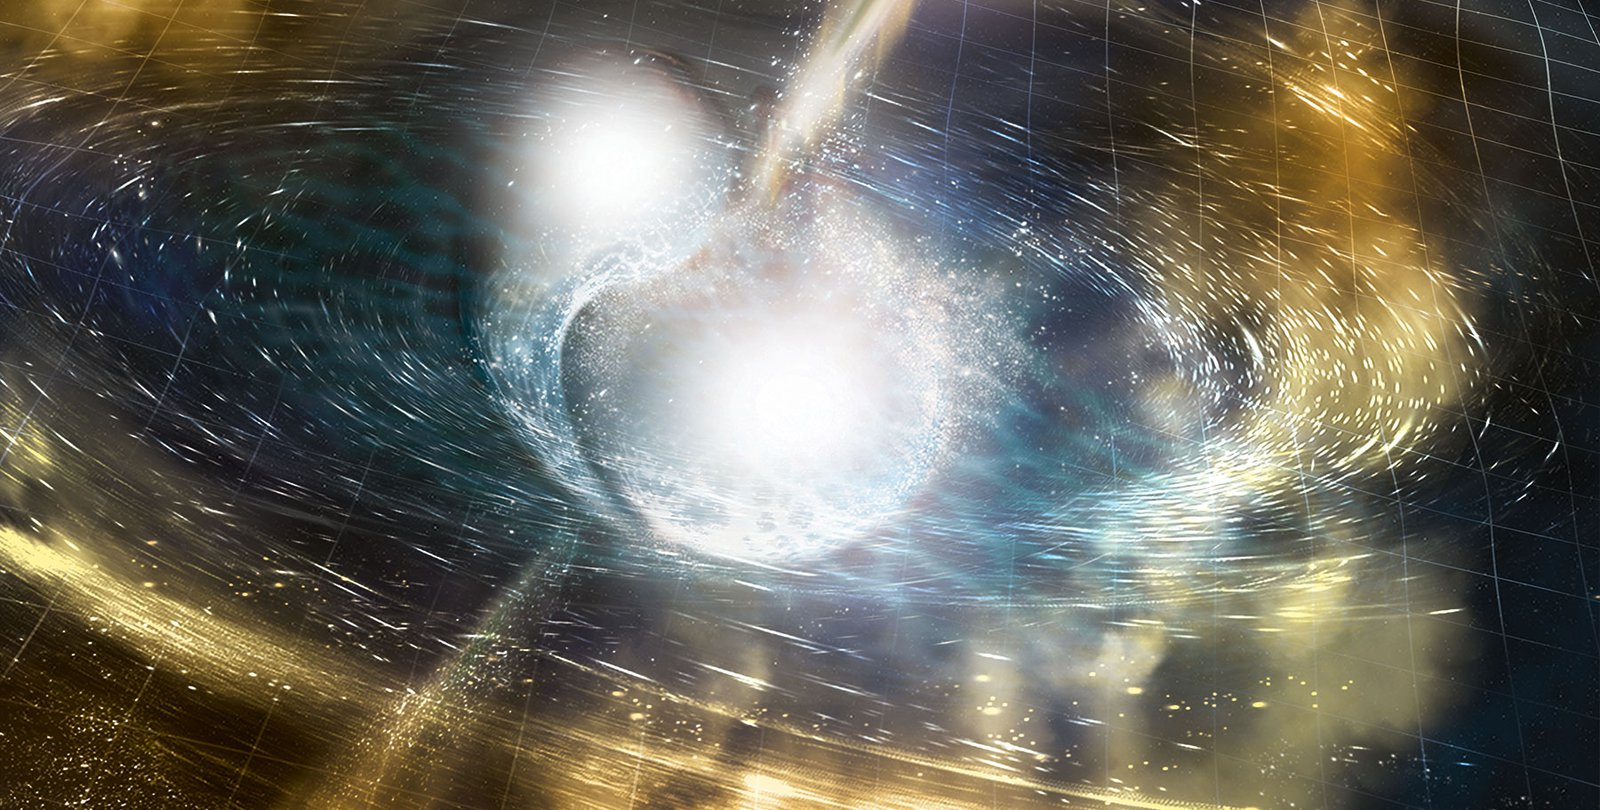 Artwork of neutron stars.